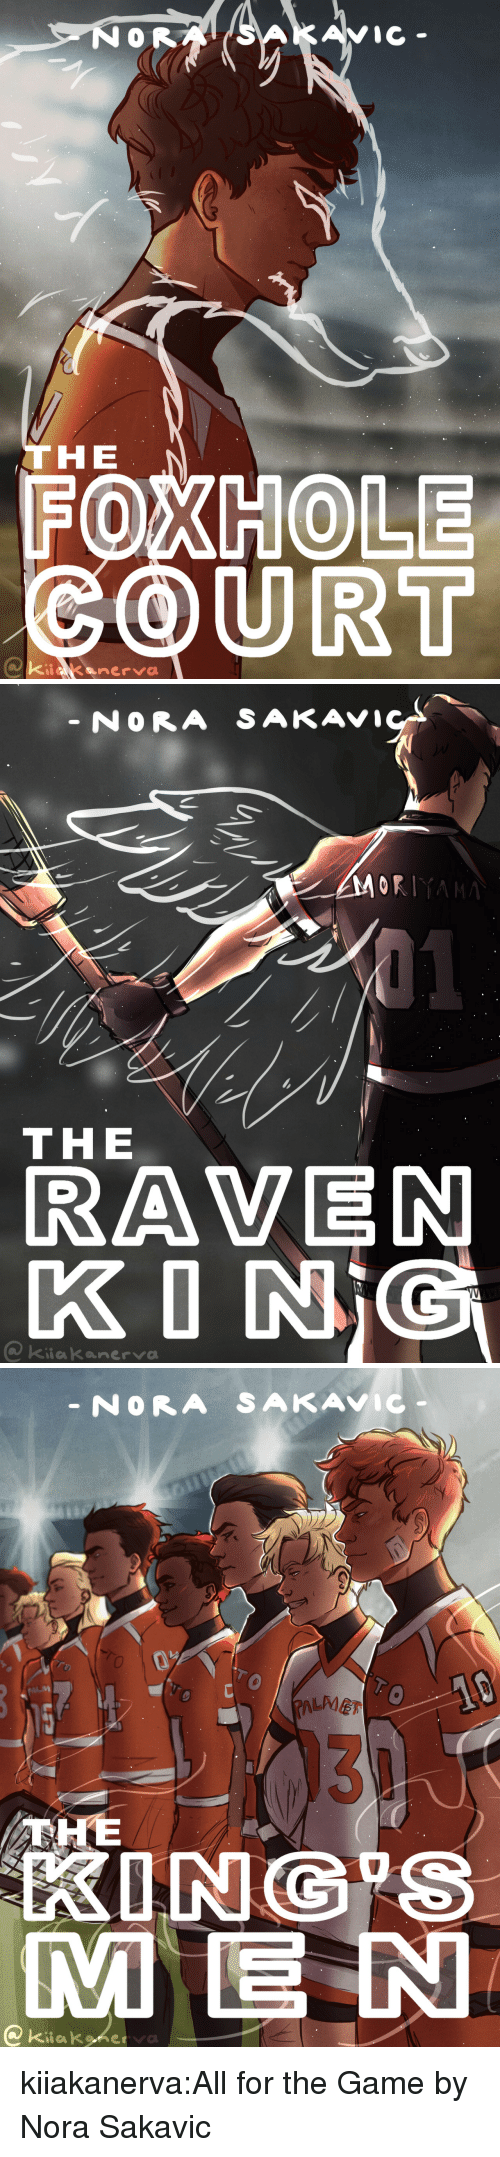 nora: C-  THE  FOXHOLE  COURT   NORA SAKAVI  ORIYA  THE  RAVEN  KONİC  kiakanerva   NORA SAKAVIC  0  LMET  131  KING S  ME N  @ Kiiakyketa kiiakanerva:All for the Game by Nora Sakavic